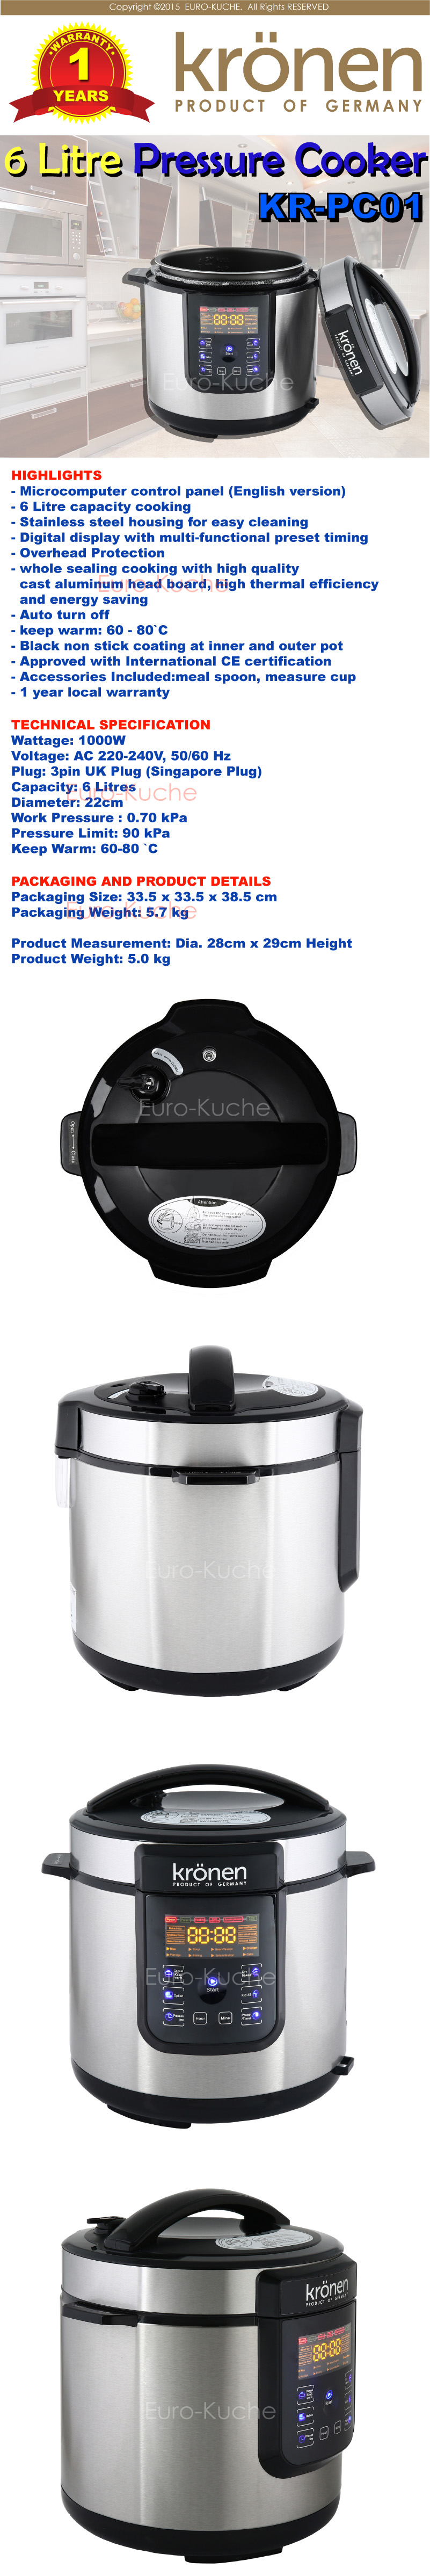 Slow Juicer Silvercrest Review : Slow Juicer Kuche. . Entsafter Slow Juicer Gsx12. Slow Juicer 2. . Juicer. Pita Bread ...